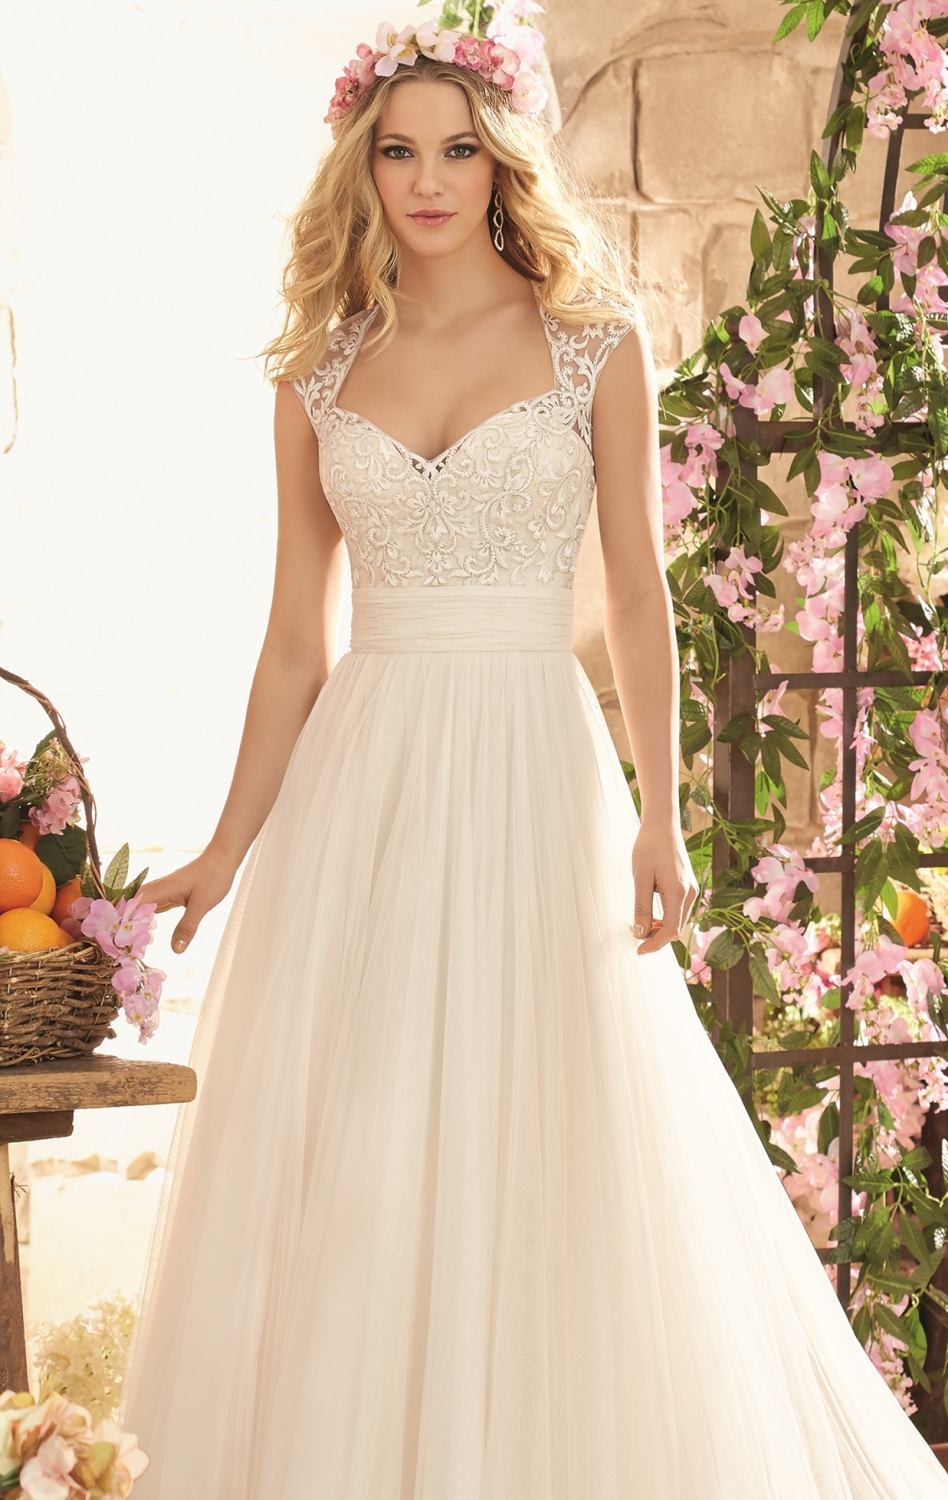 My Wedding Dress 6803 By Voyage Mori Lee